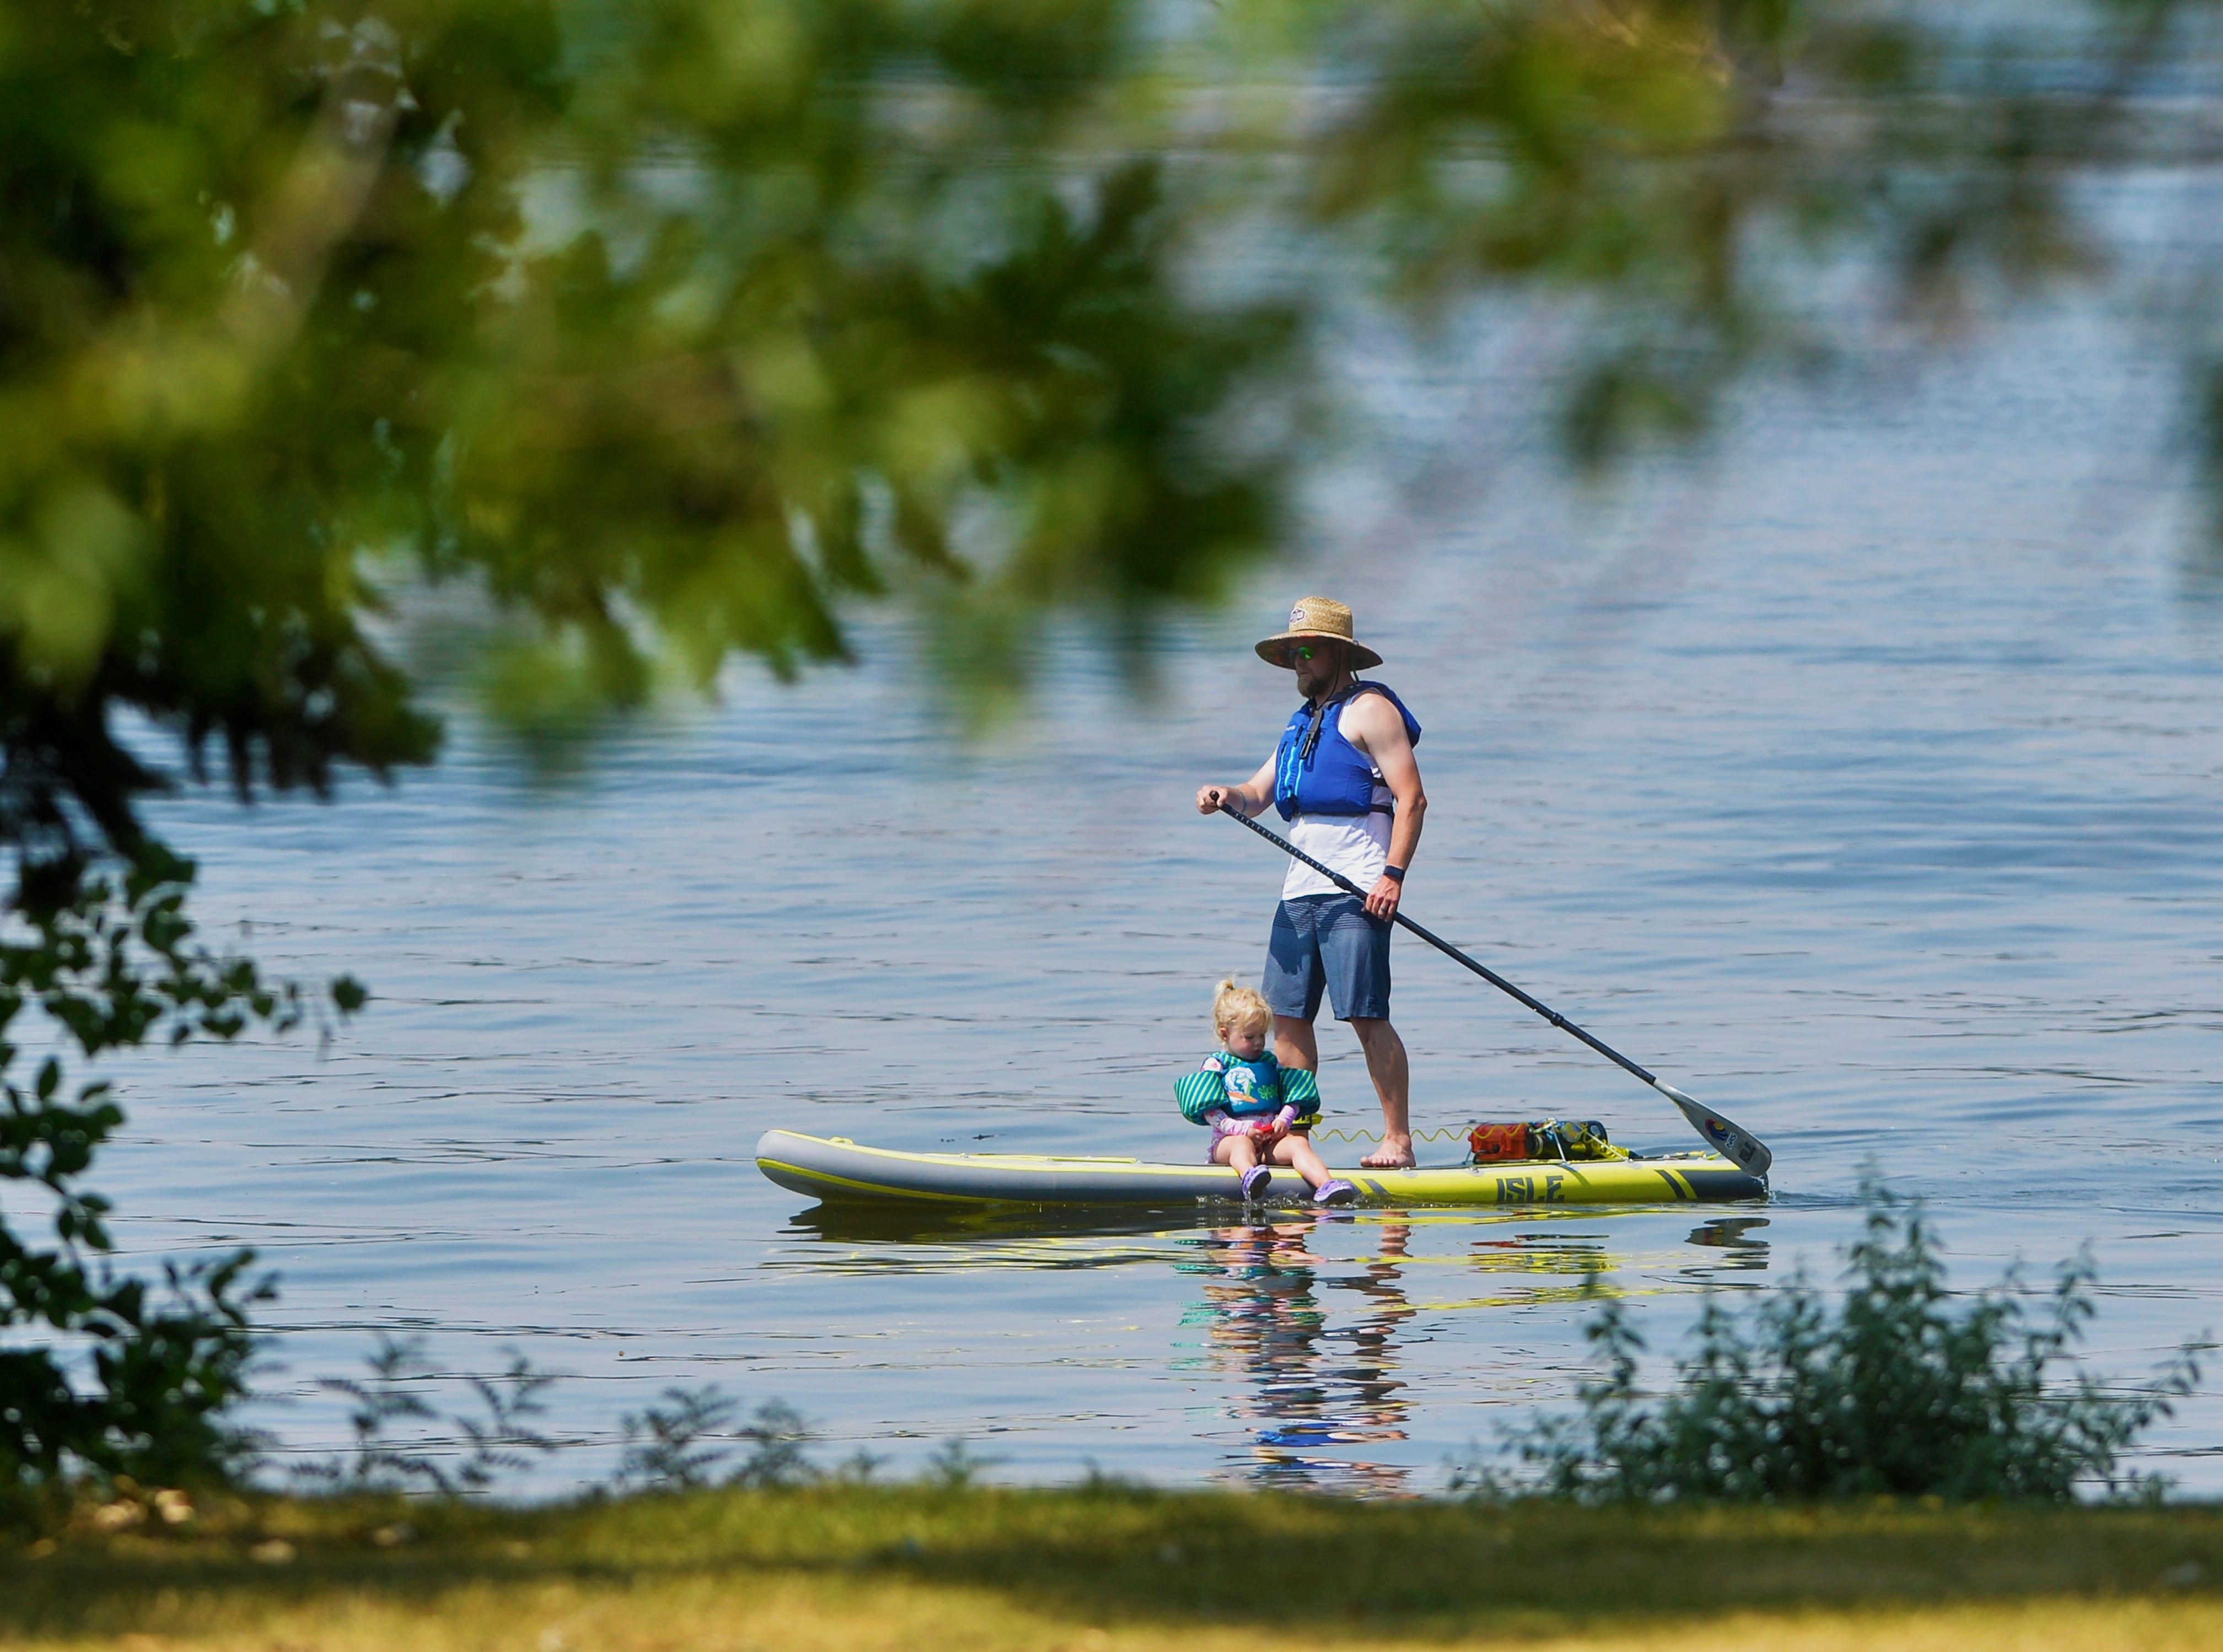 Luke Taylor paddle boards with his daughter Paizley, age 2, in Broadwater Bay on Thursday as temperatures approach 100 degrees.